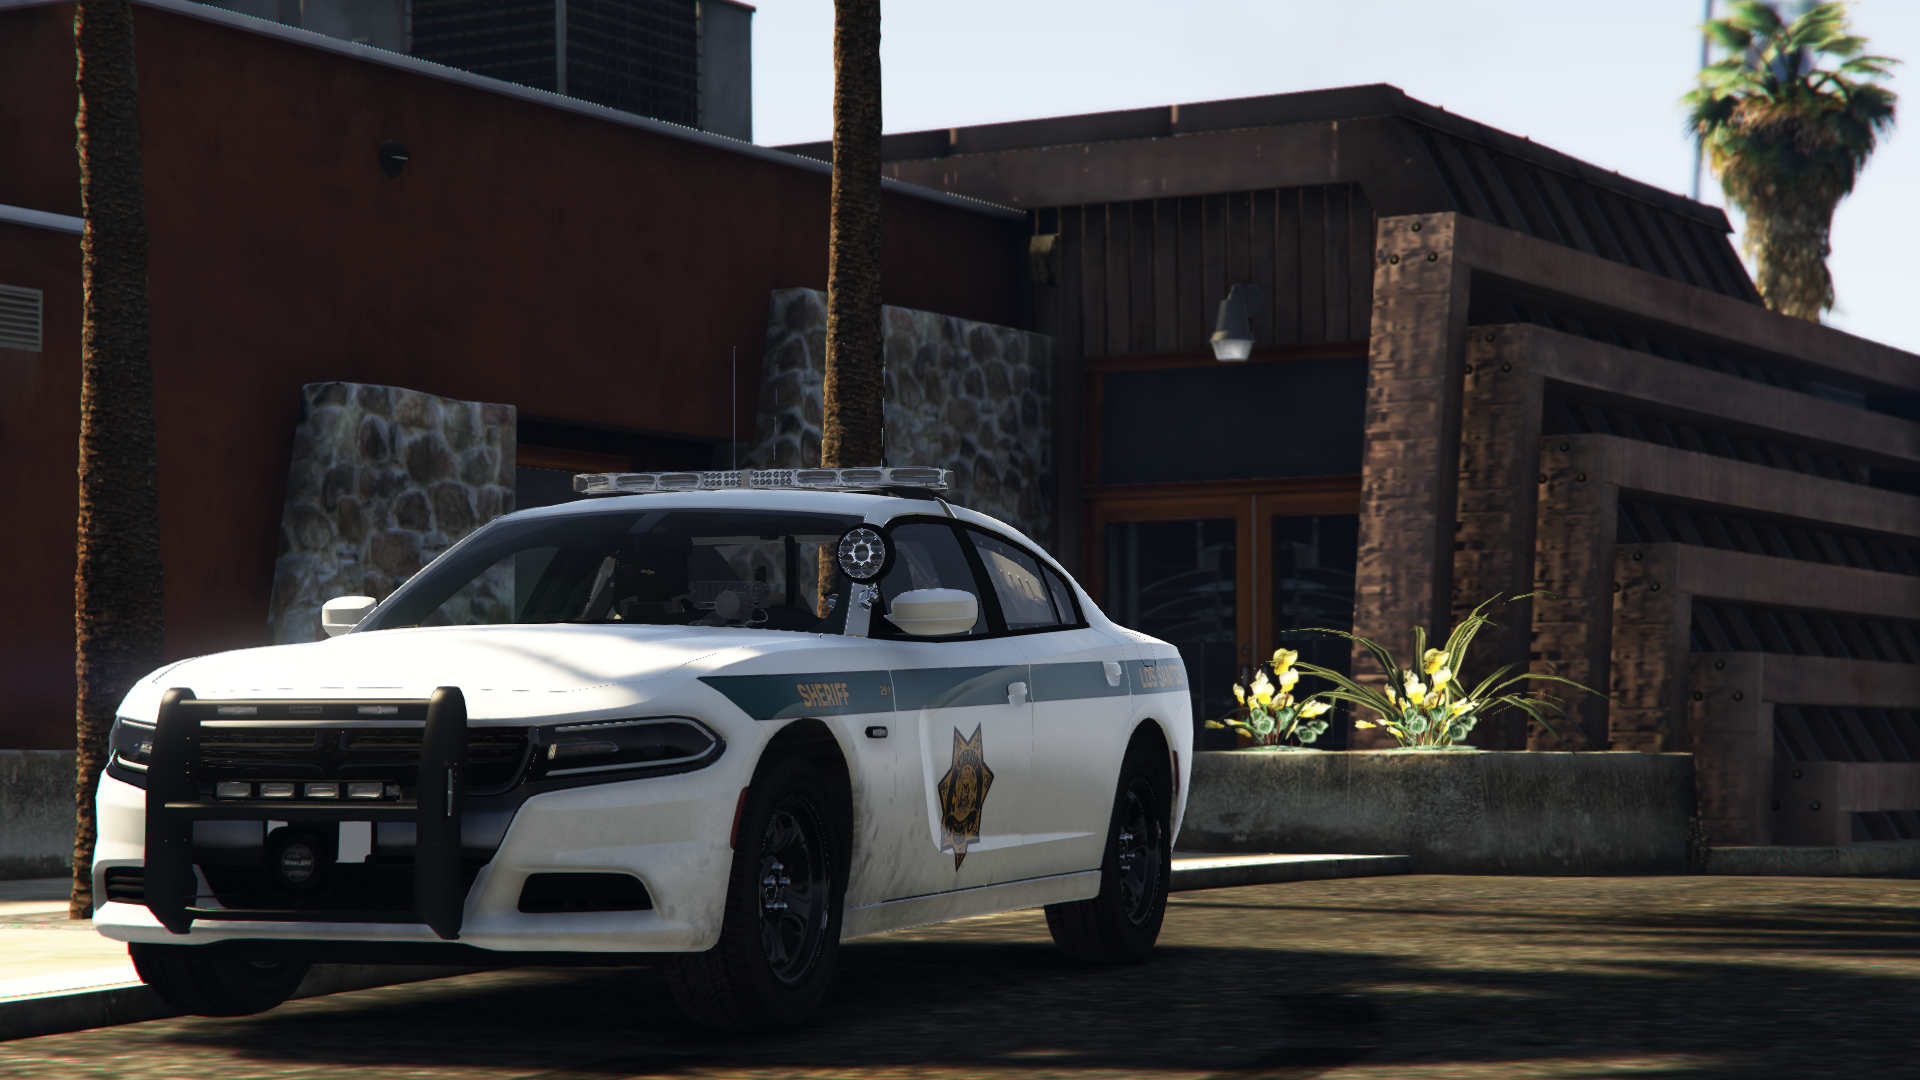 LSSD Charger